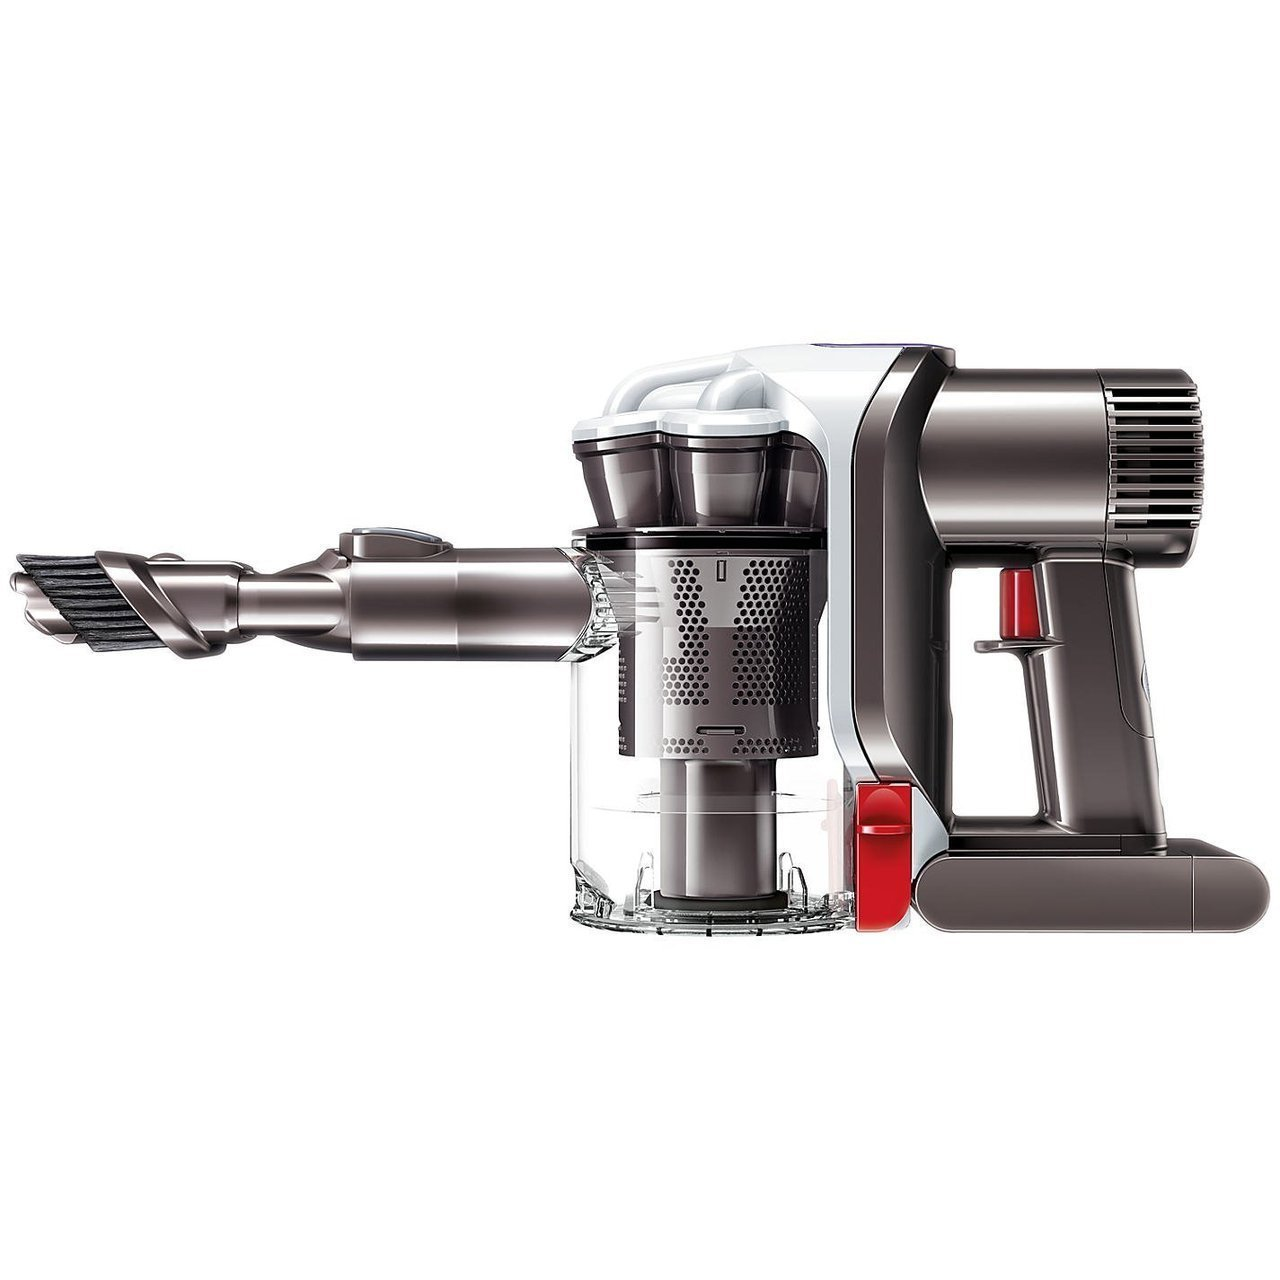 Amazon.com: Dyson DC35 Origen Blanco Digital Slim  ...